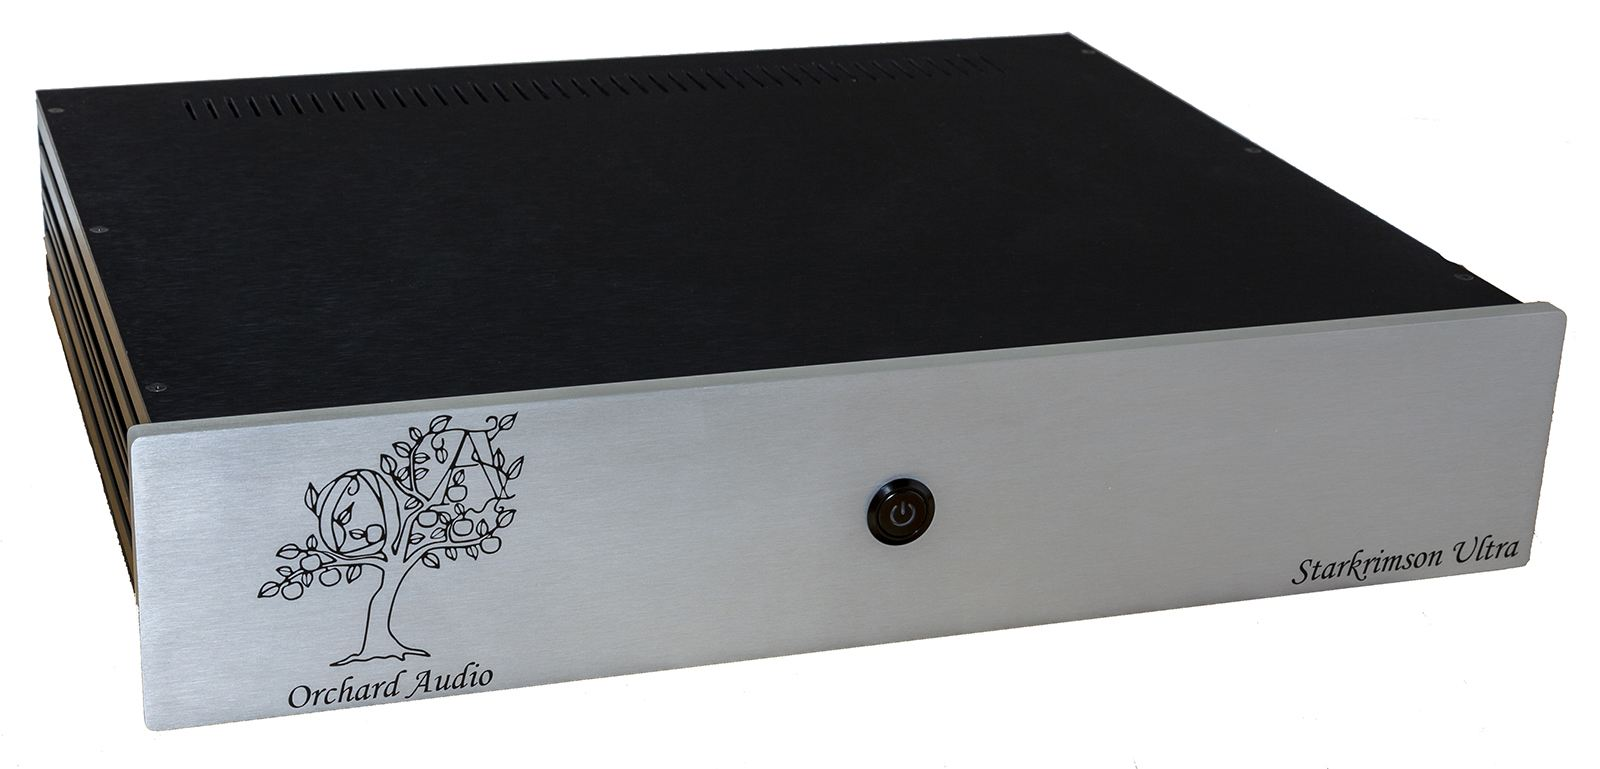 Starkrimson Stereo Ultra Front/Top